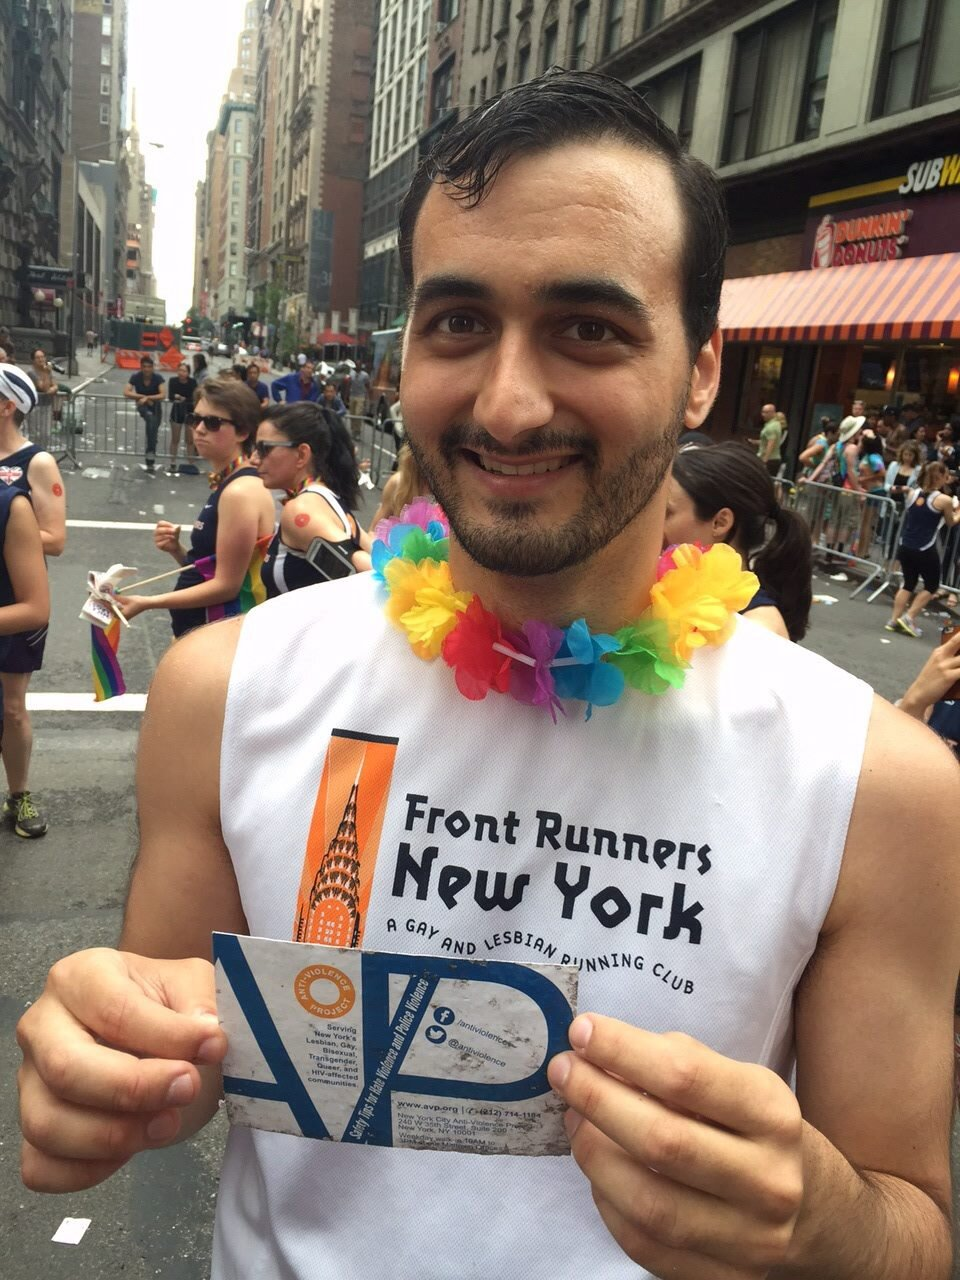 Me at NYC Pride 2015, holding one of the weathered cards that I had designed for AVP.